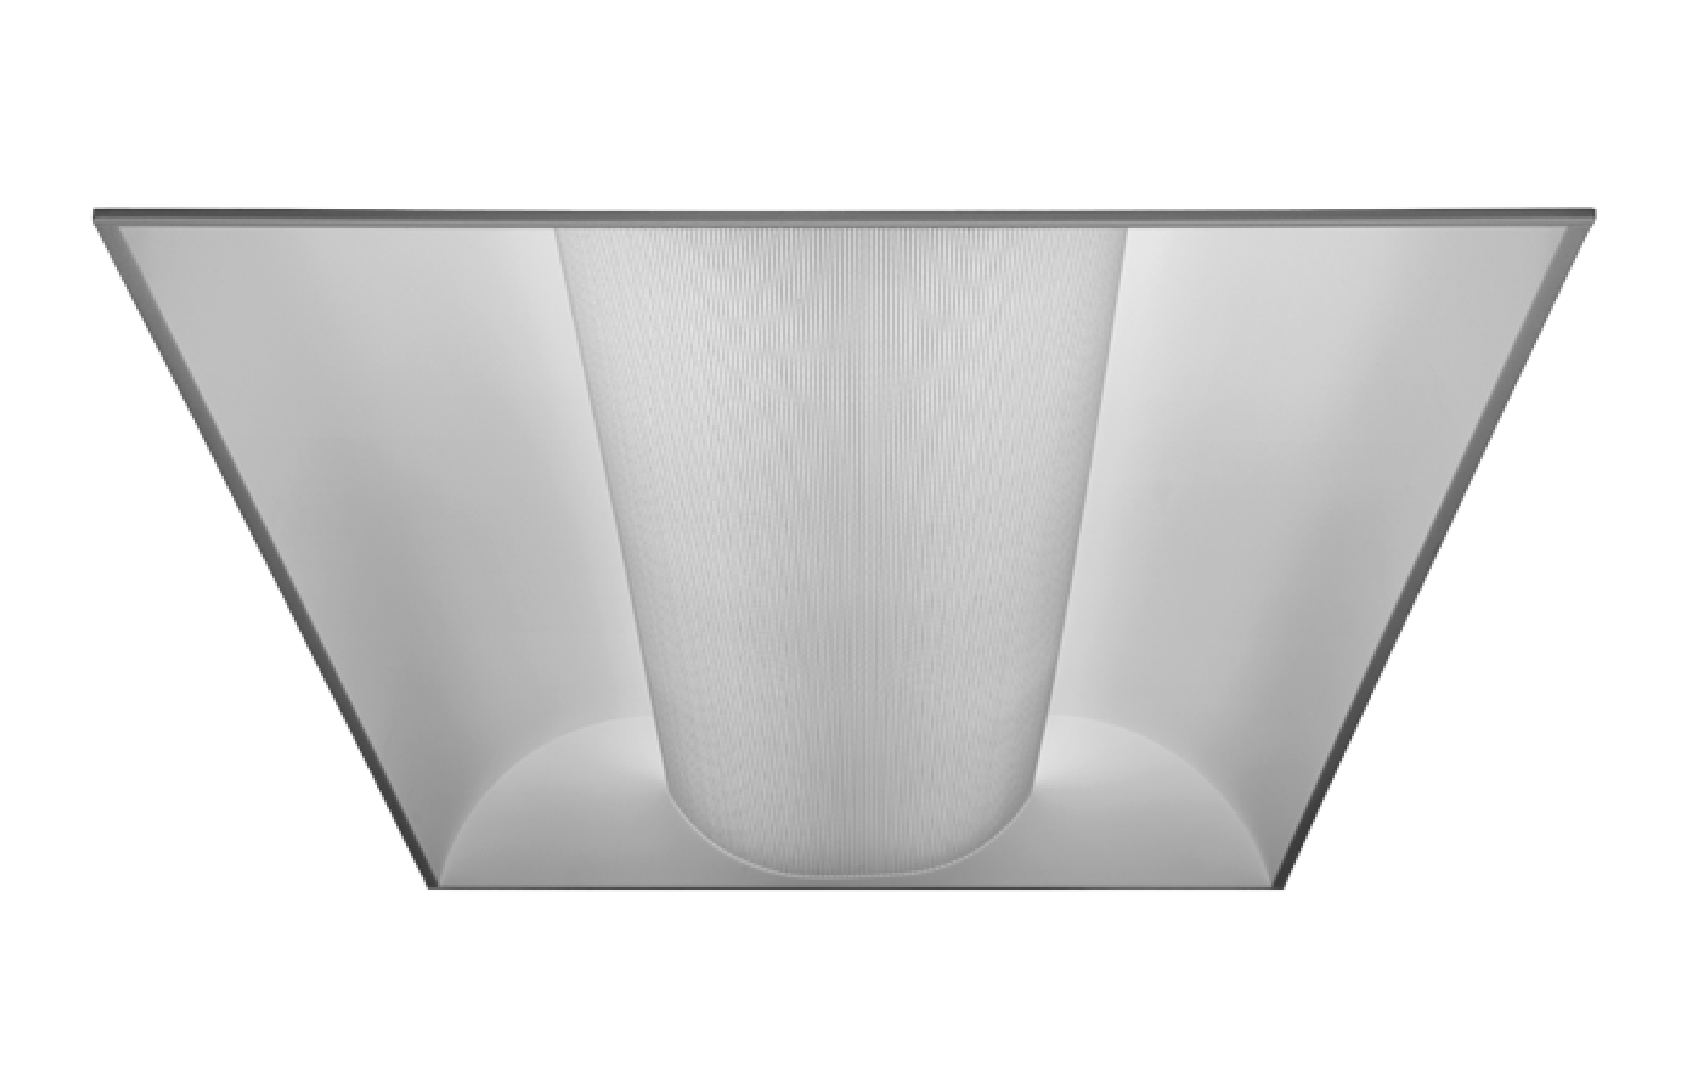 5dfa3f148f2 Alcon Lighting 14002 Elite Architectural LED 2x4 Recessed Center Basket  Perforated Direct Light Troffer. Double tap to zoom